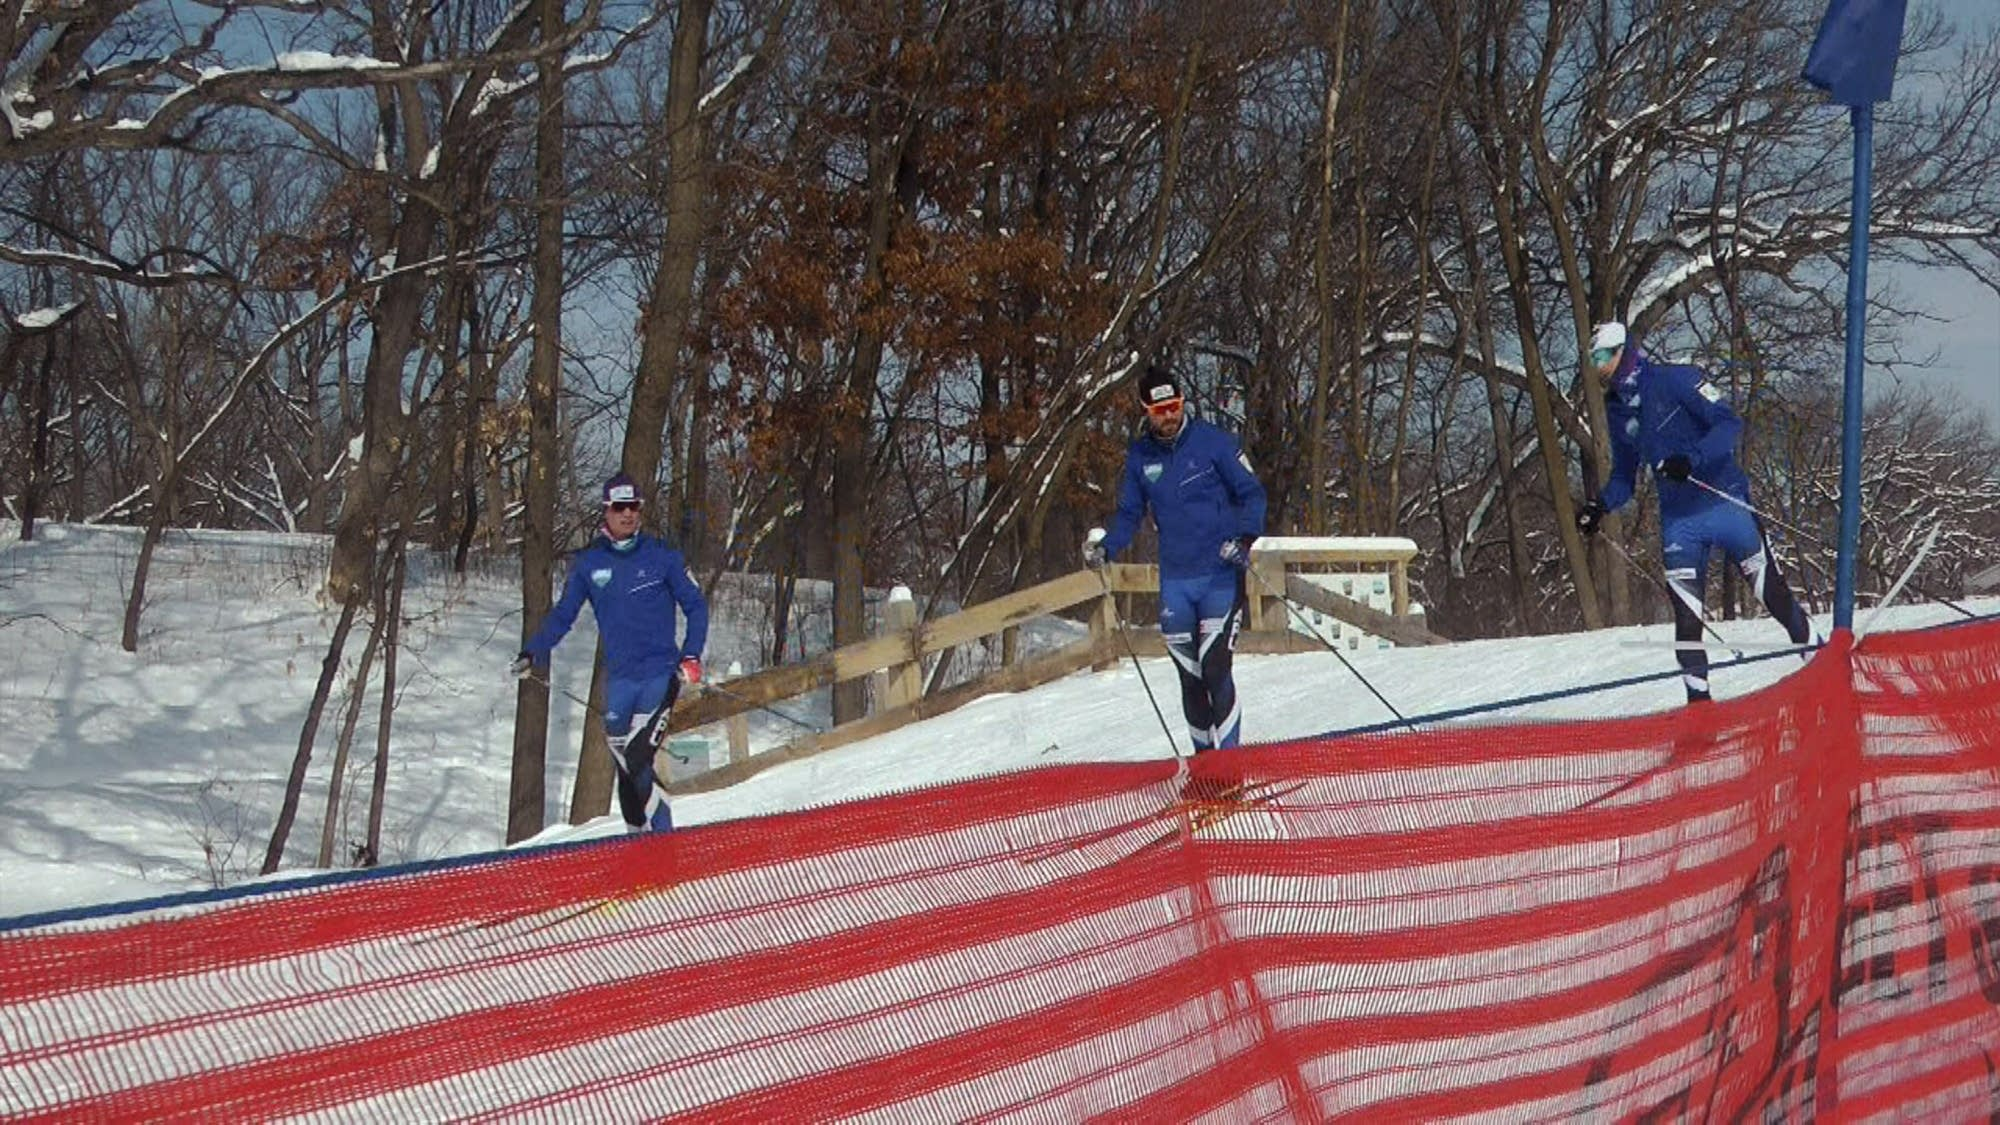 Cross-country skiers practice at Theodore Wirth Regional Park.